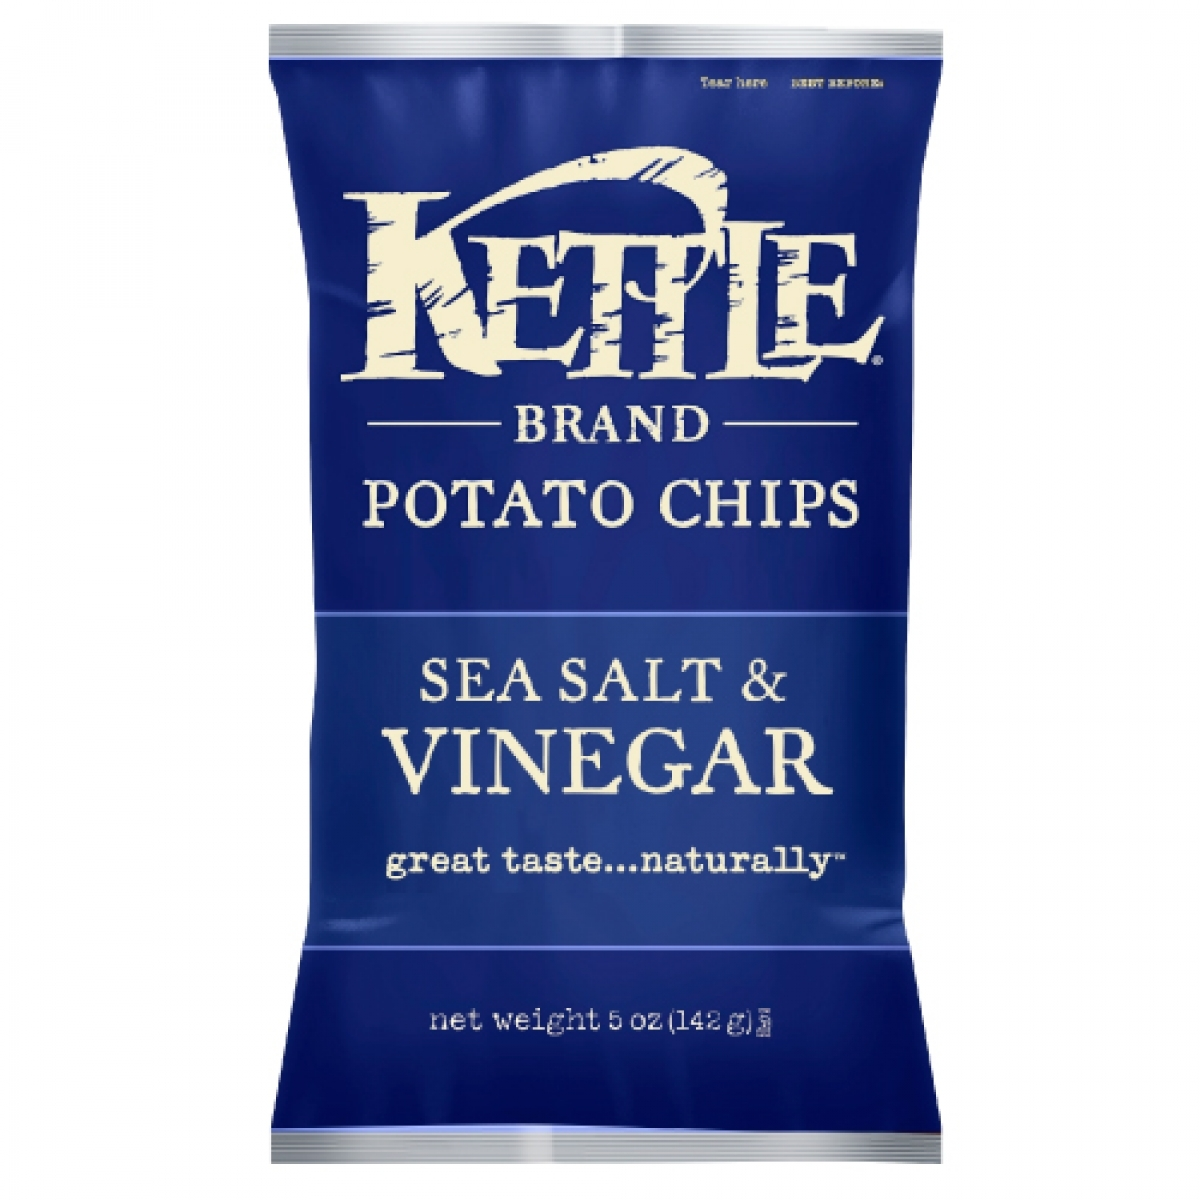 Kettle Brand All Natural Potato Chips – Sea Salt & Vinegar (Regular 5oz)